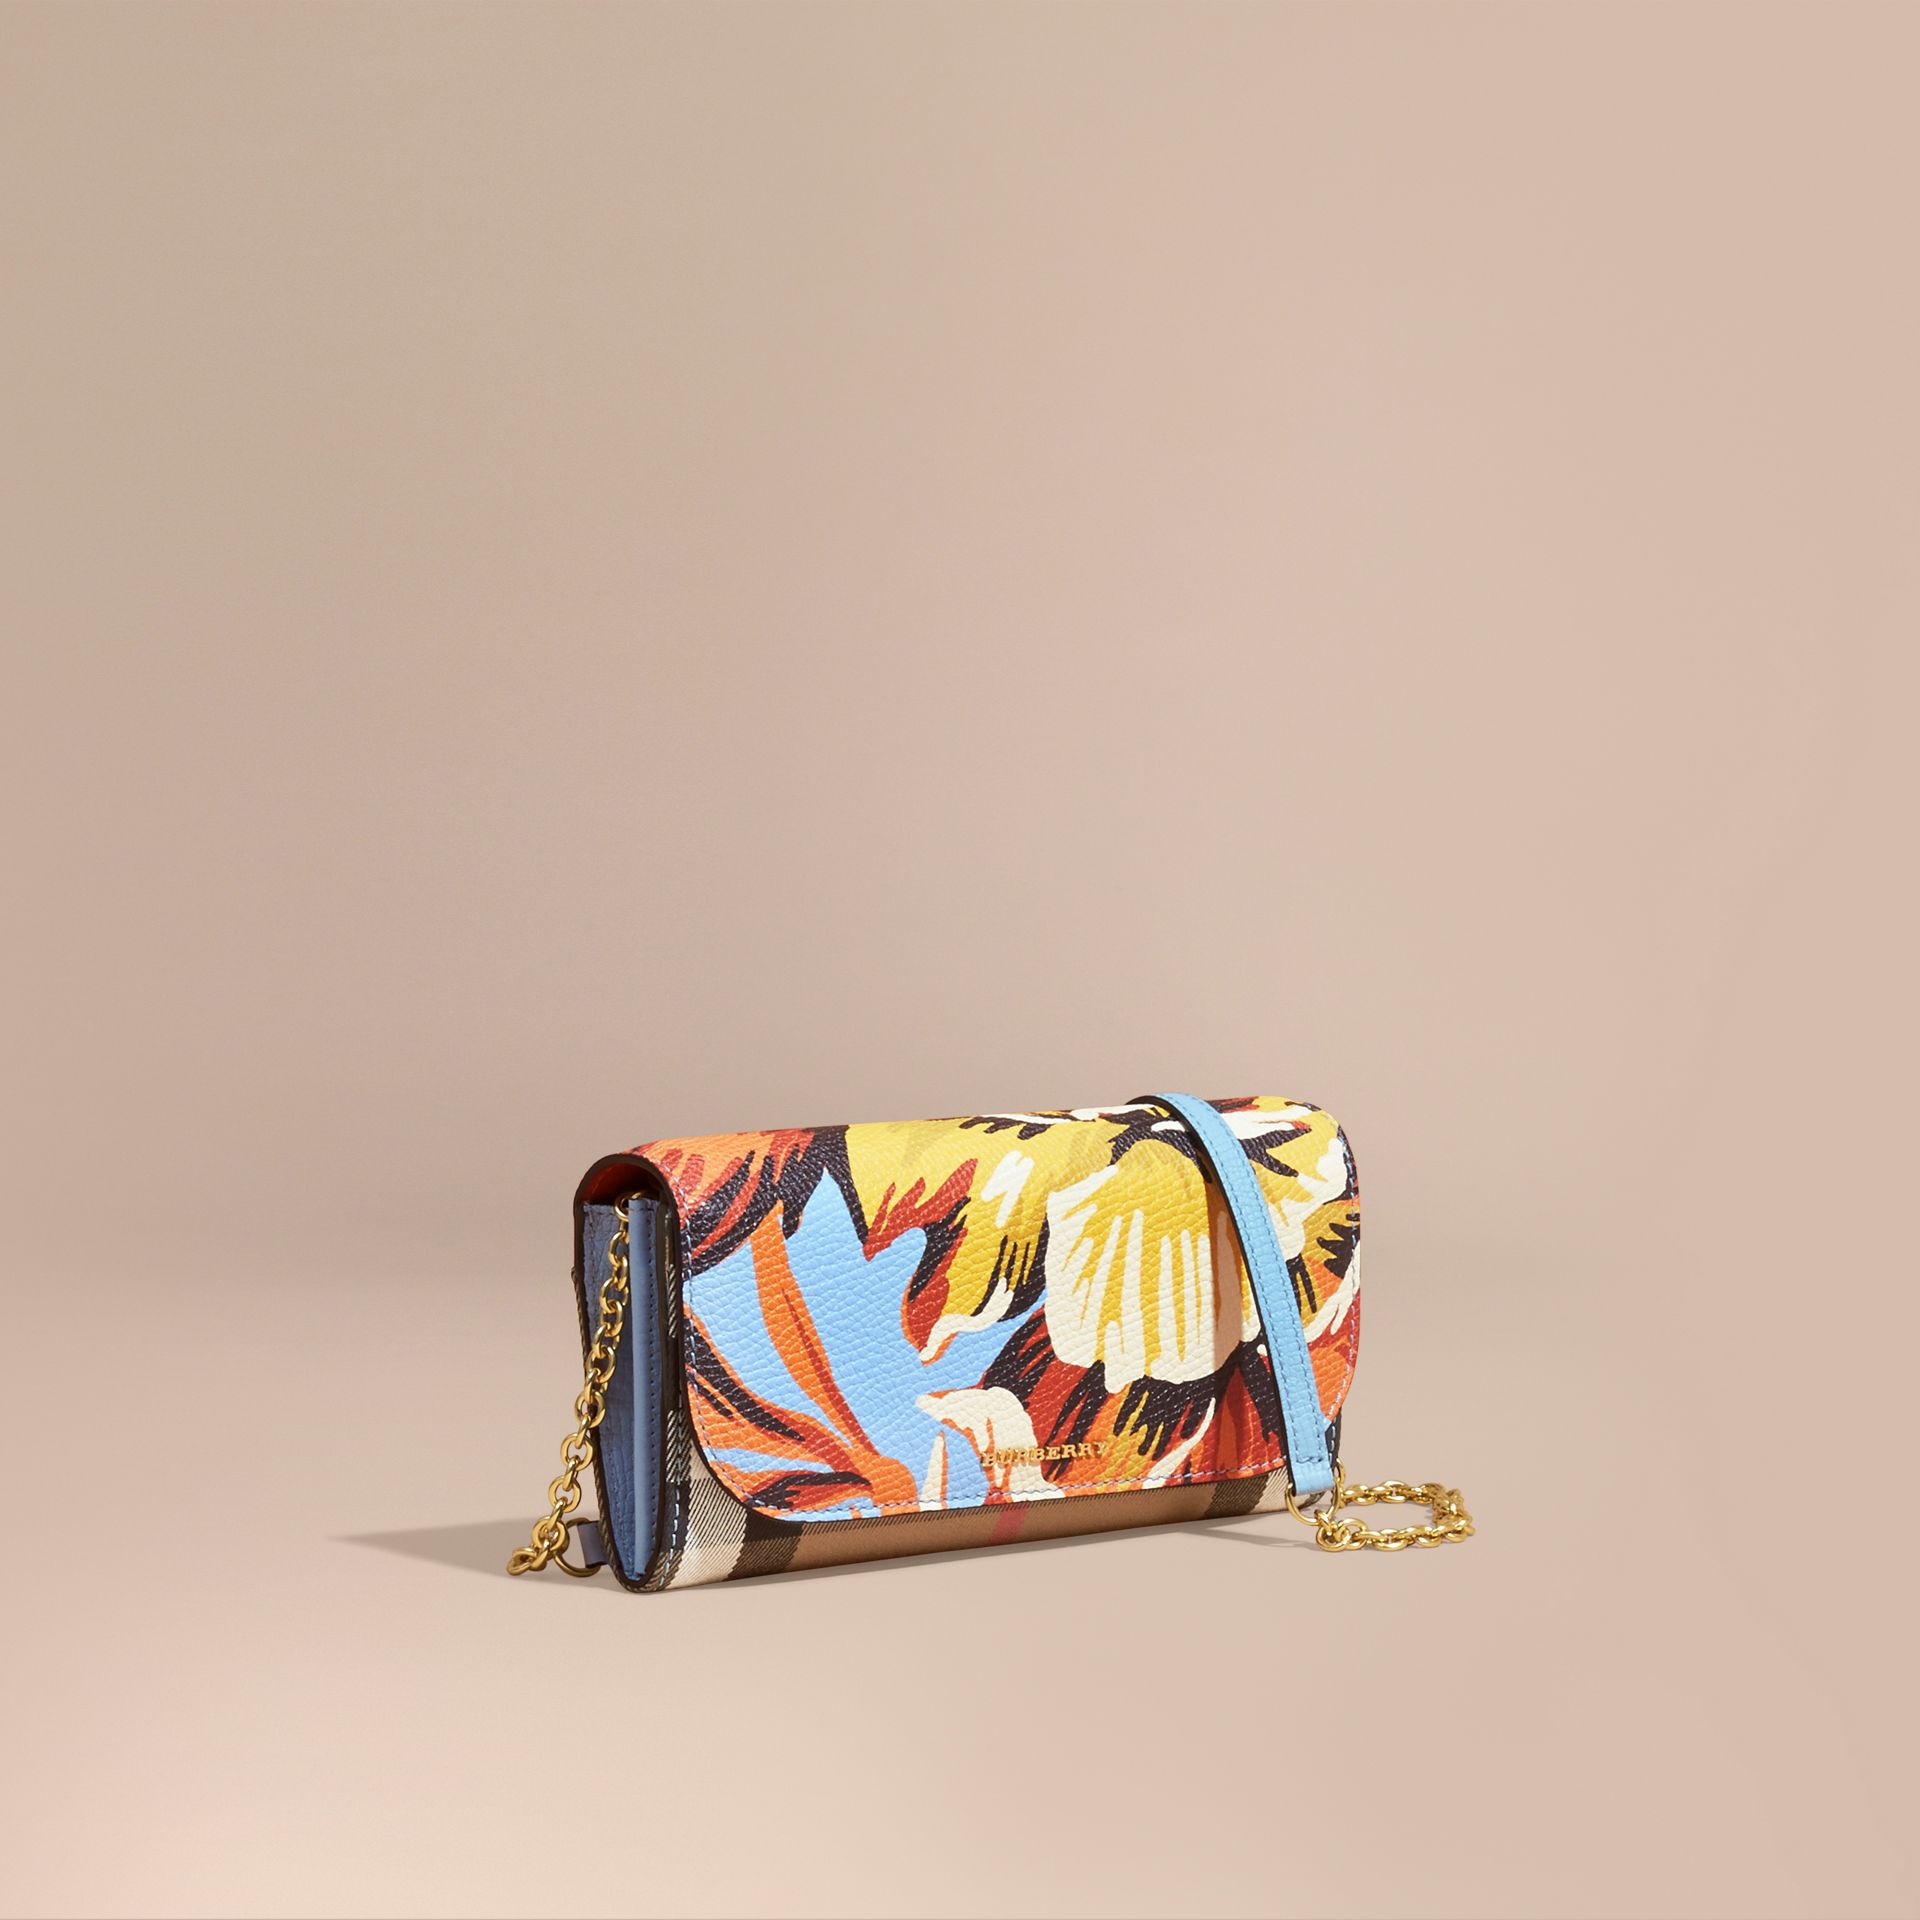 House Check and Peony Rose Print Wallet with Chain in Pale Blue/vibrant Orange - gallery image 1